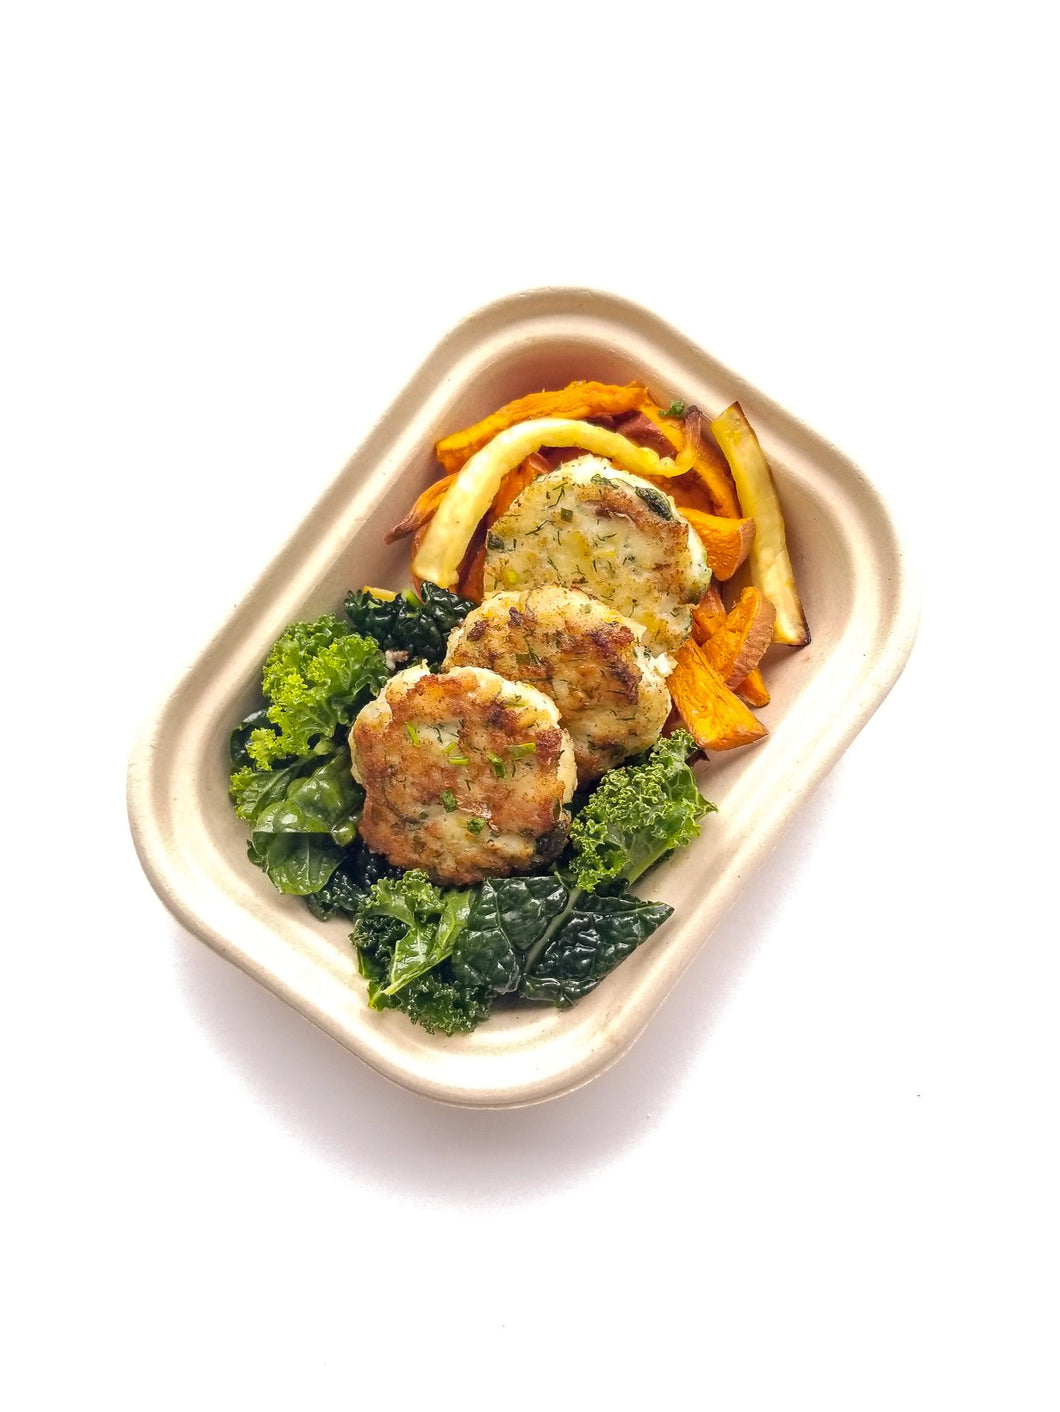 Ginger-Turmeric Fish Cakes with Steamed Broccoli with Olive Oil